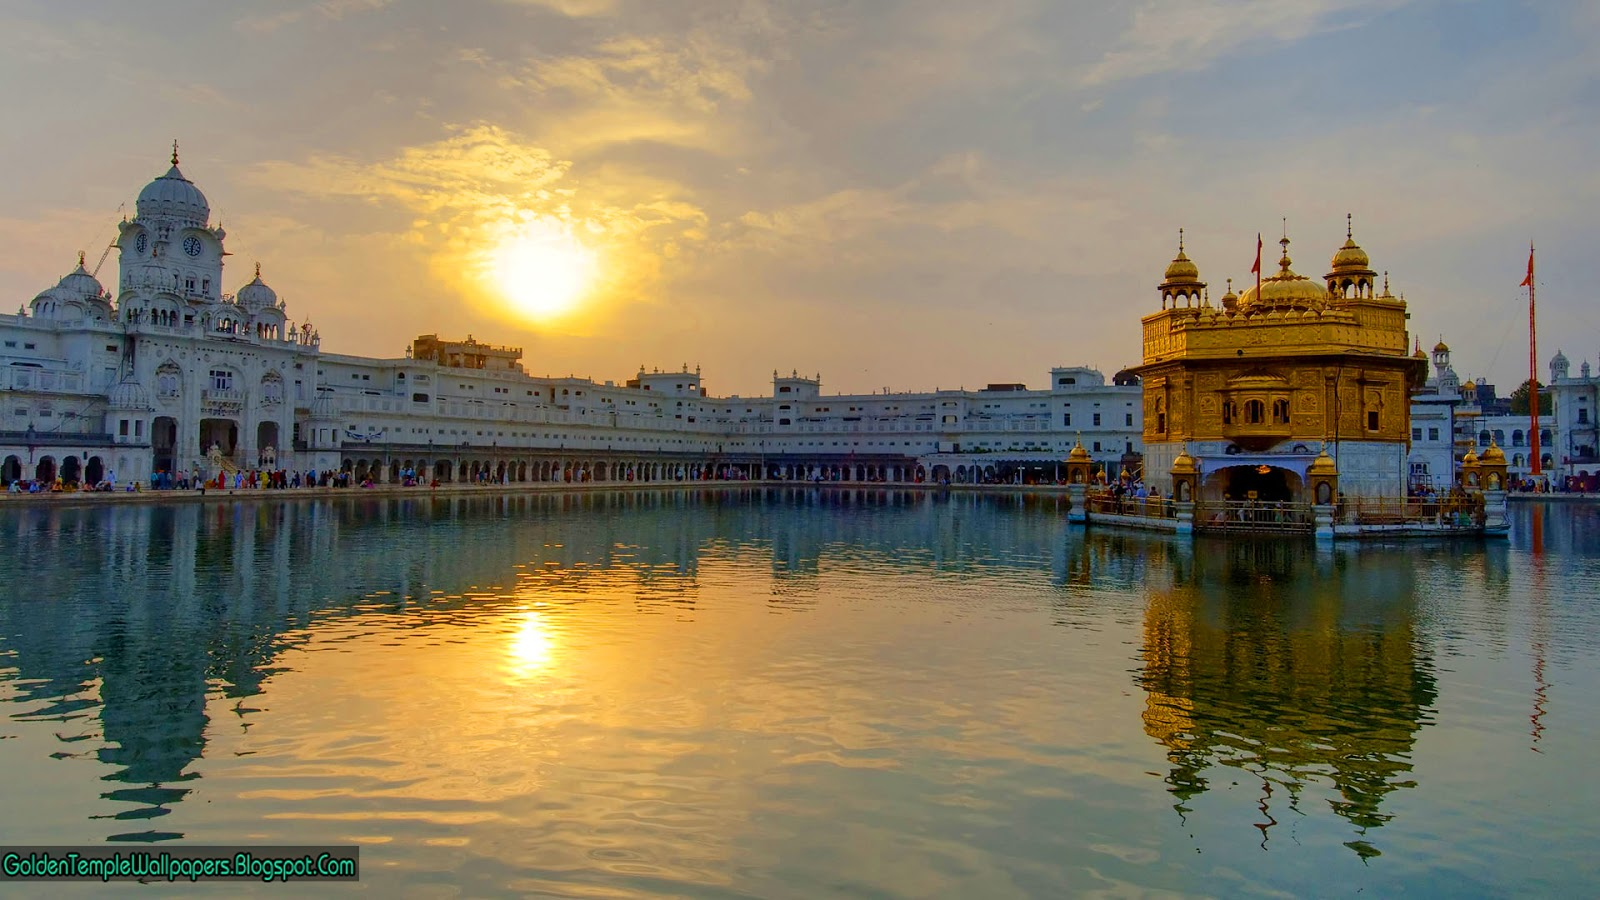 Golden temple golden temple hd wallpaper for iphone - Golden temple images hd download ...